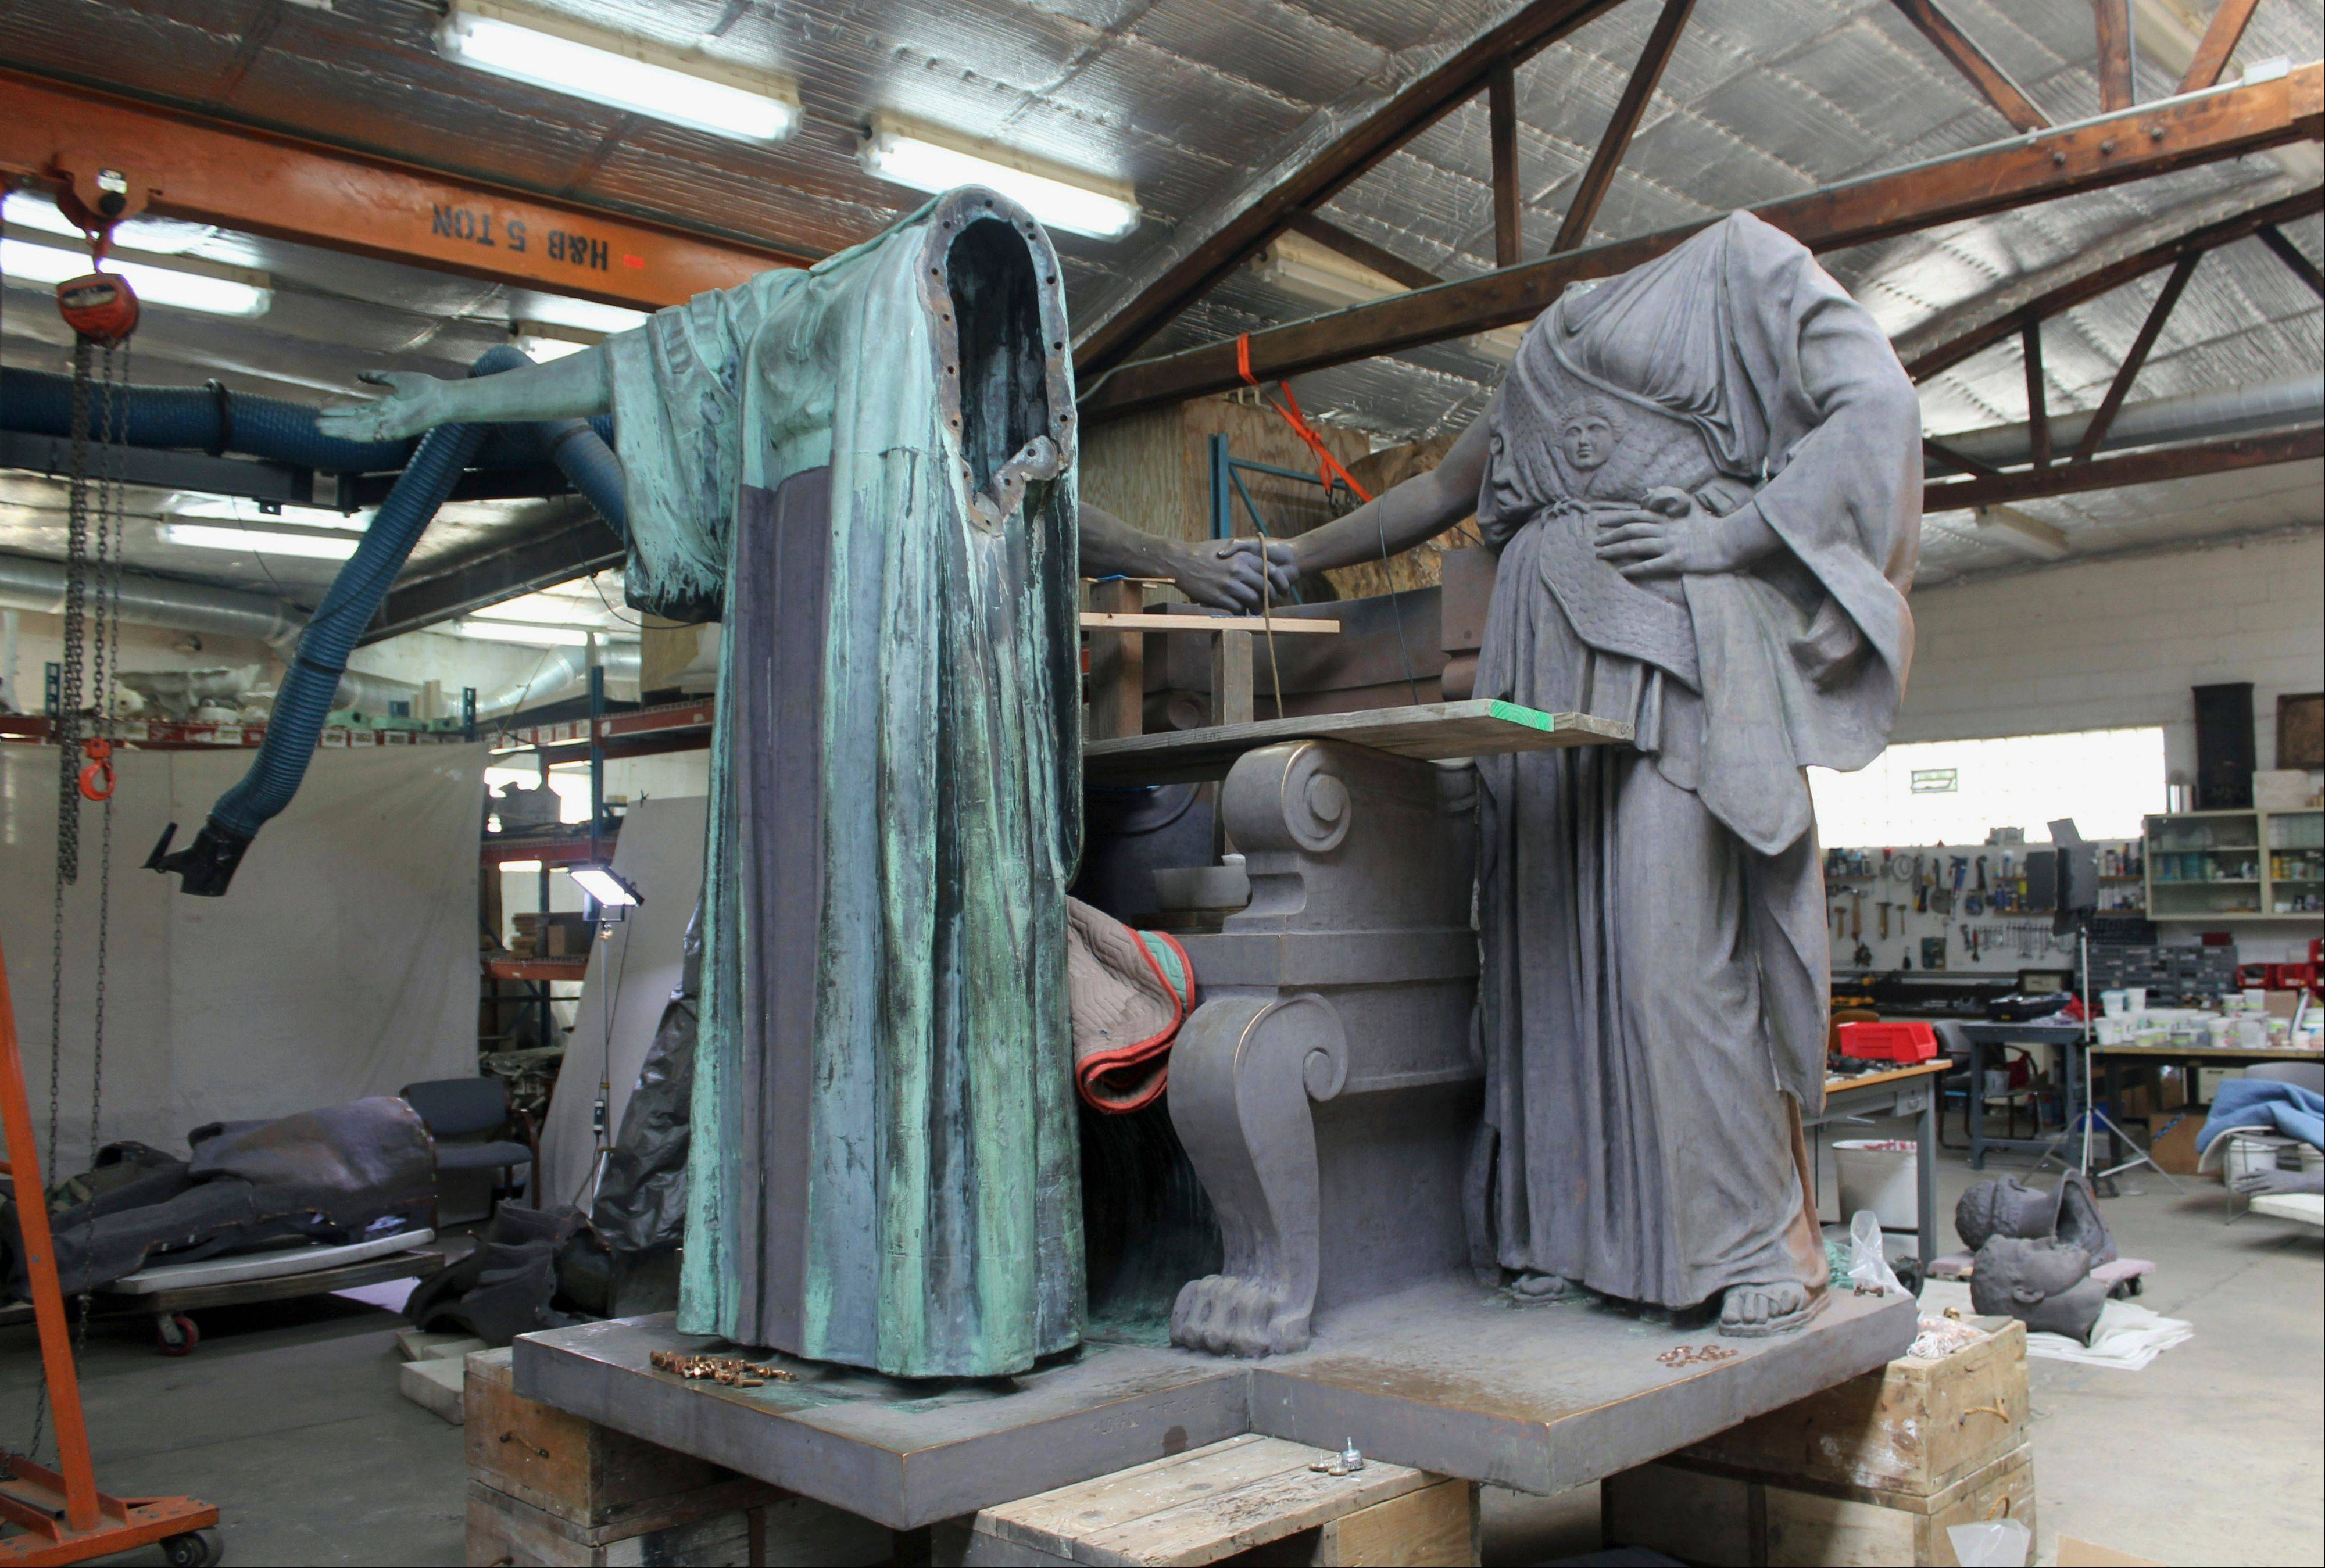 The famous statue Alma Mater sits partly disassembled at a studio in Forest Park as it undergoes repair and restoration.